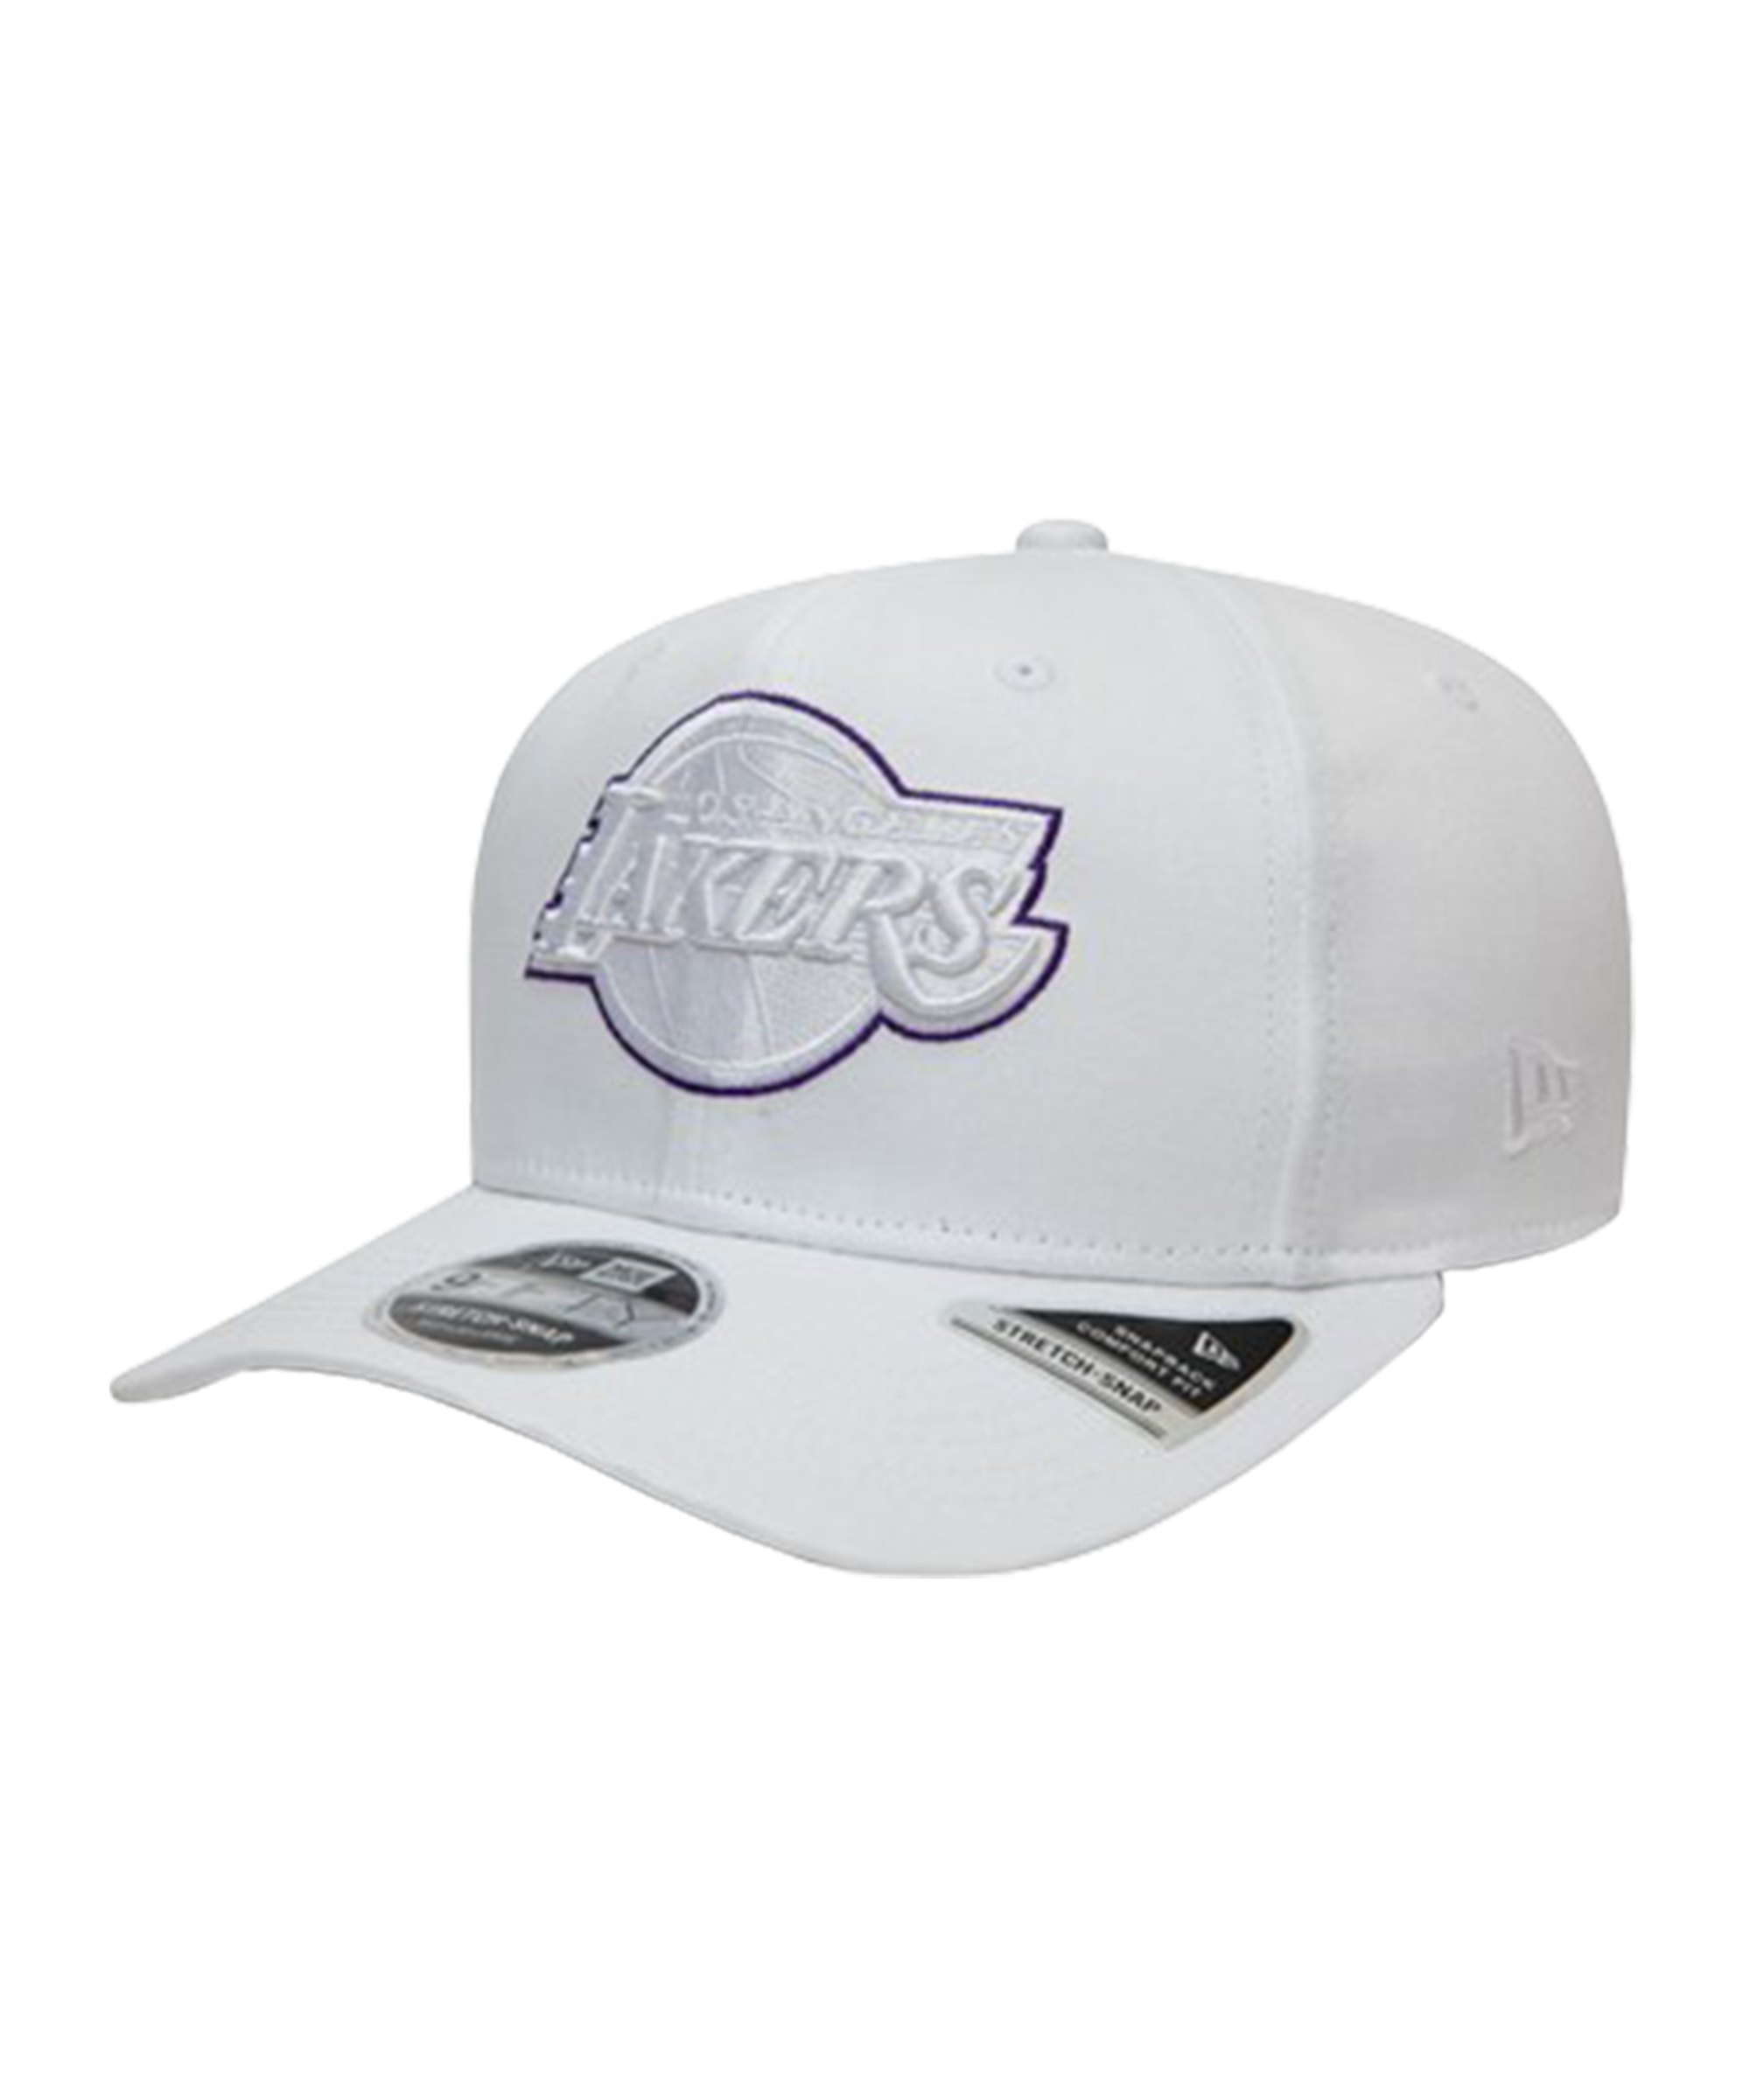 New Era LA Lakers Outline 9Fifty Cap Weiss FWHI - weiss